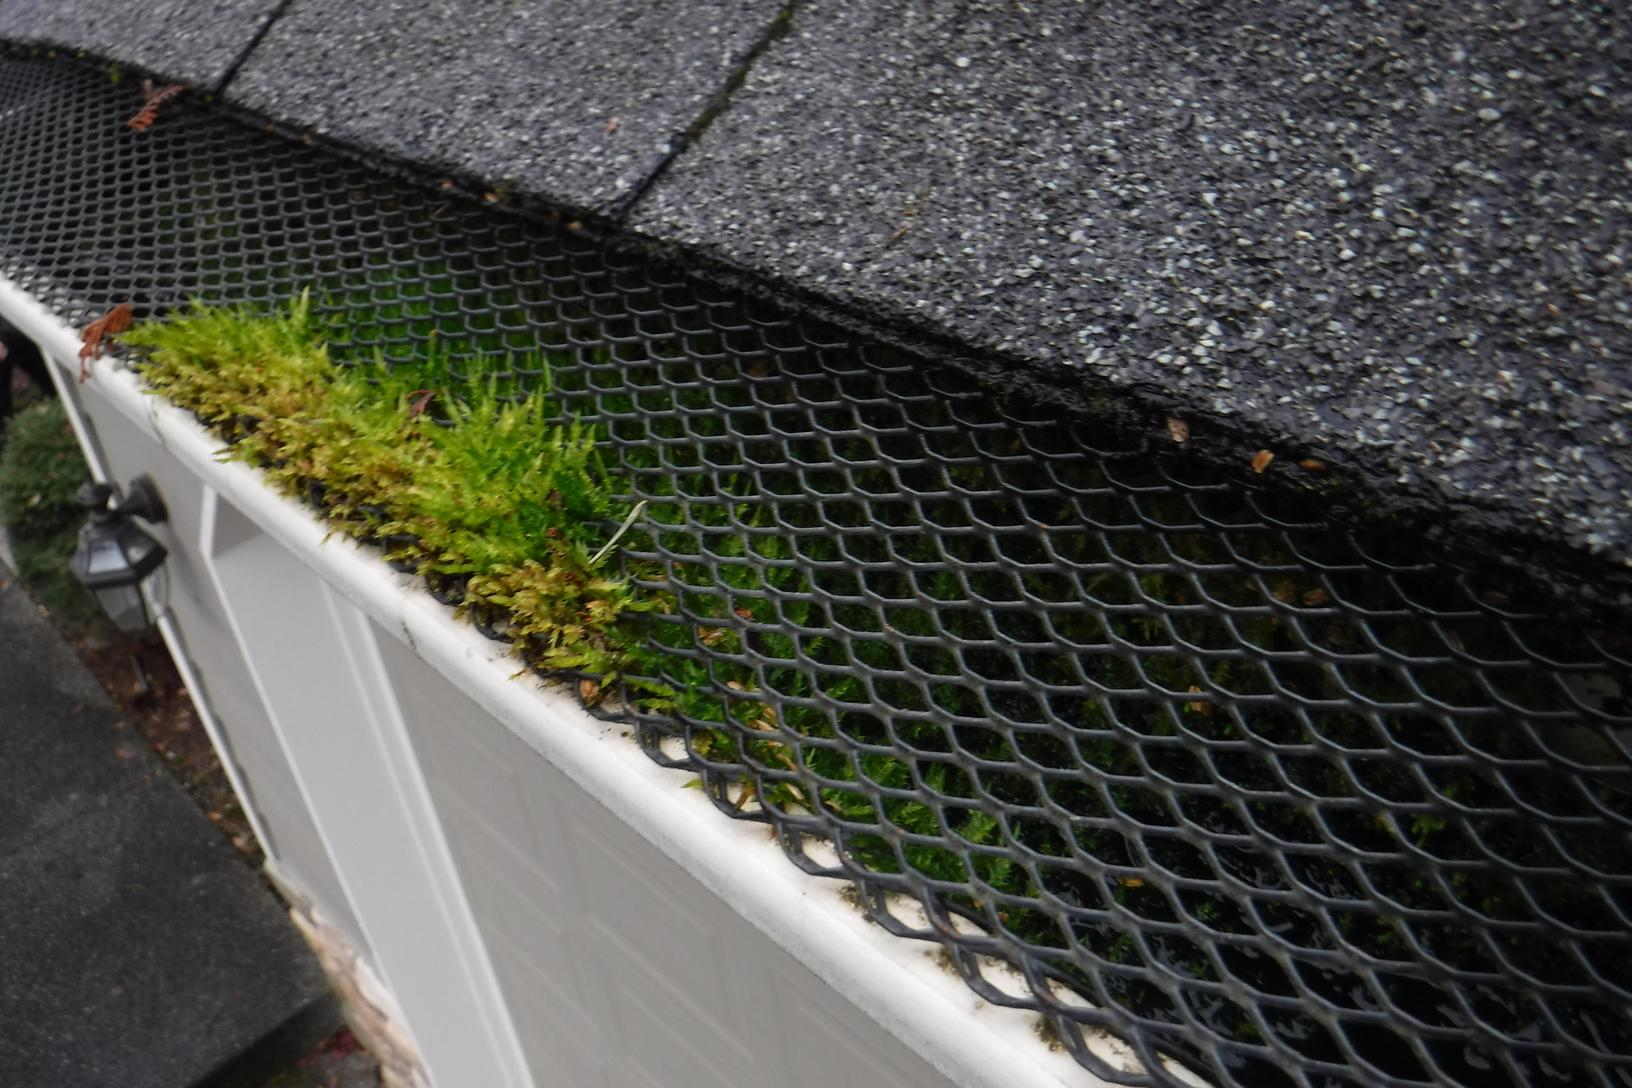 Bad Gutter Protection System Replaced With MasterShield Gutter Guards in the Graham, WA - Before Photo